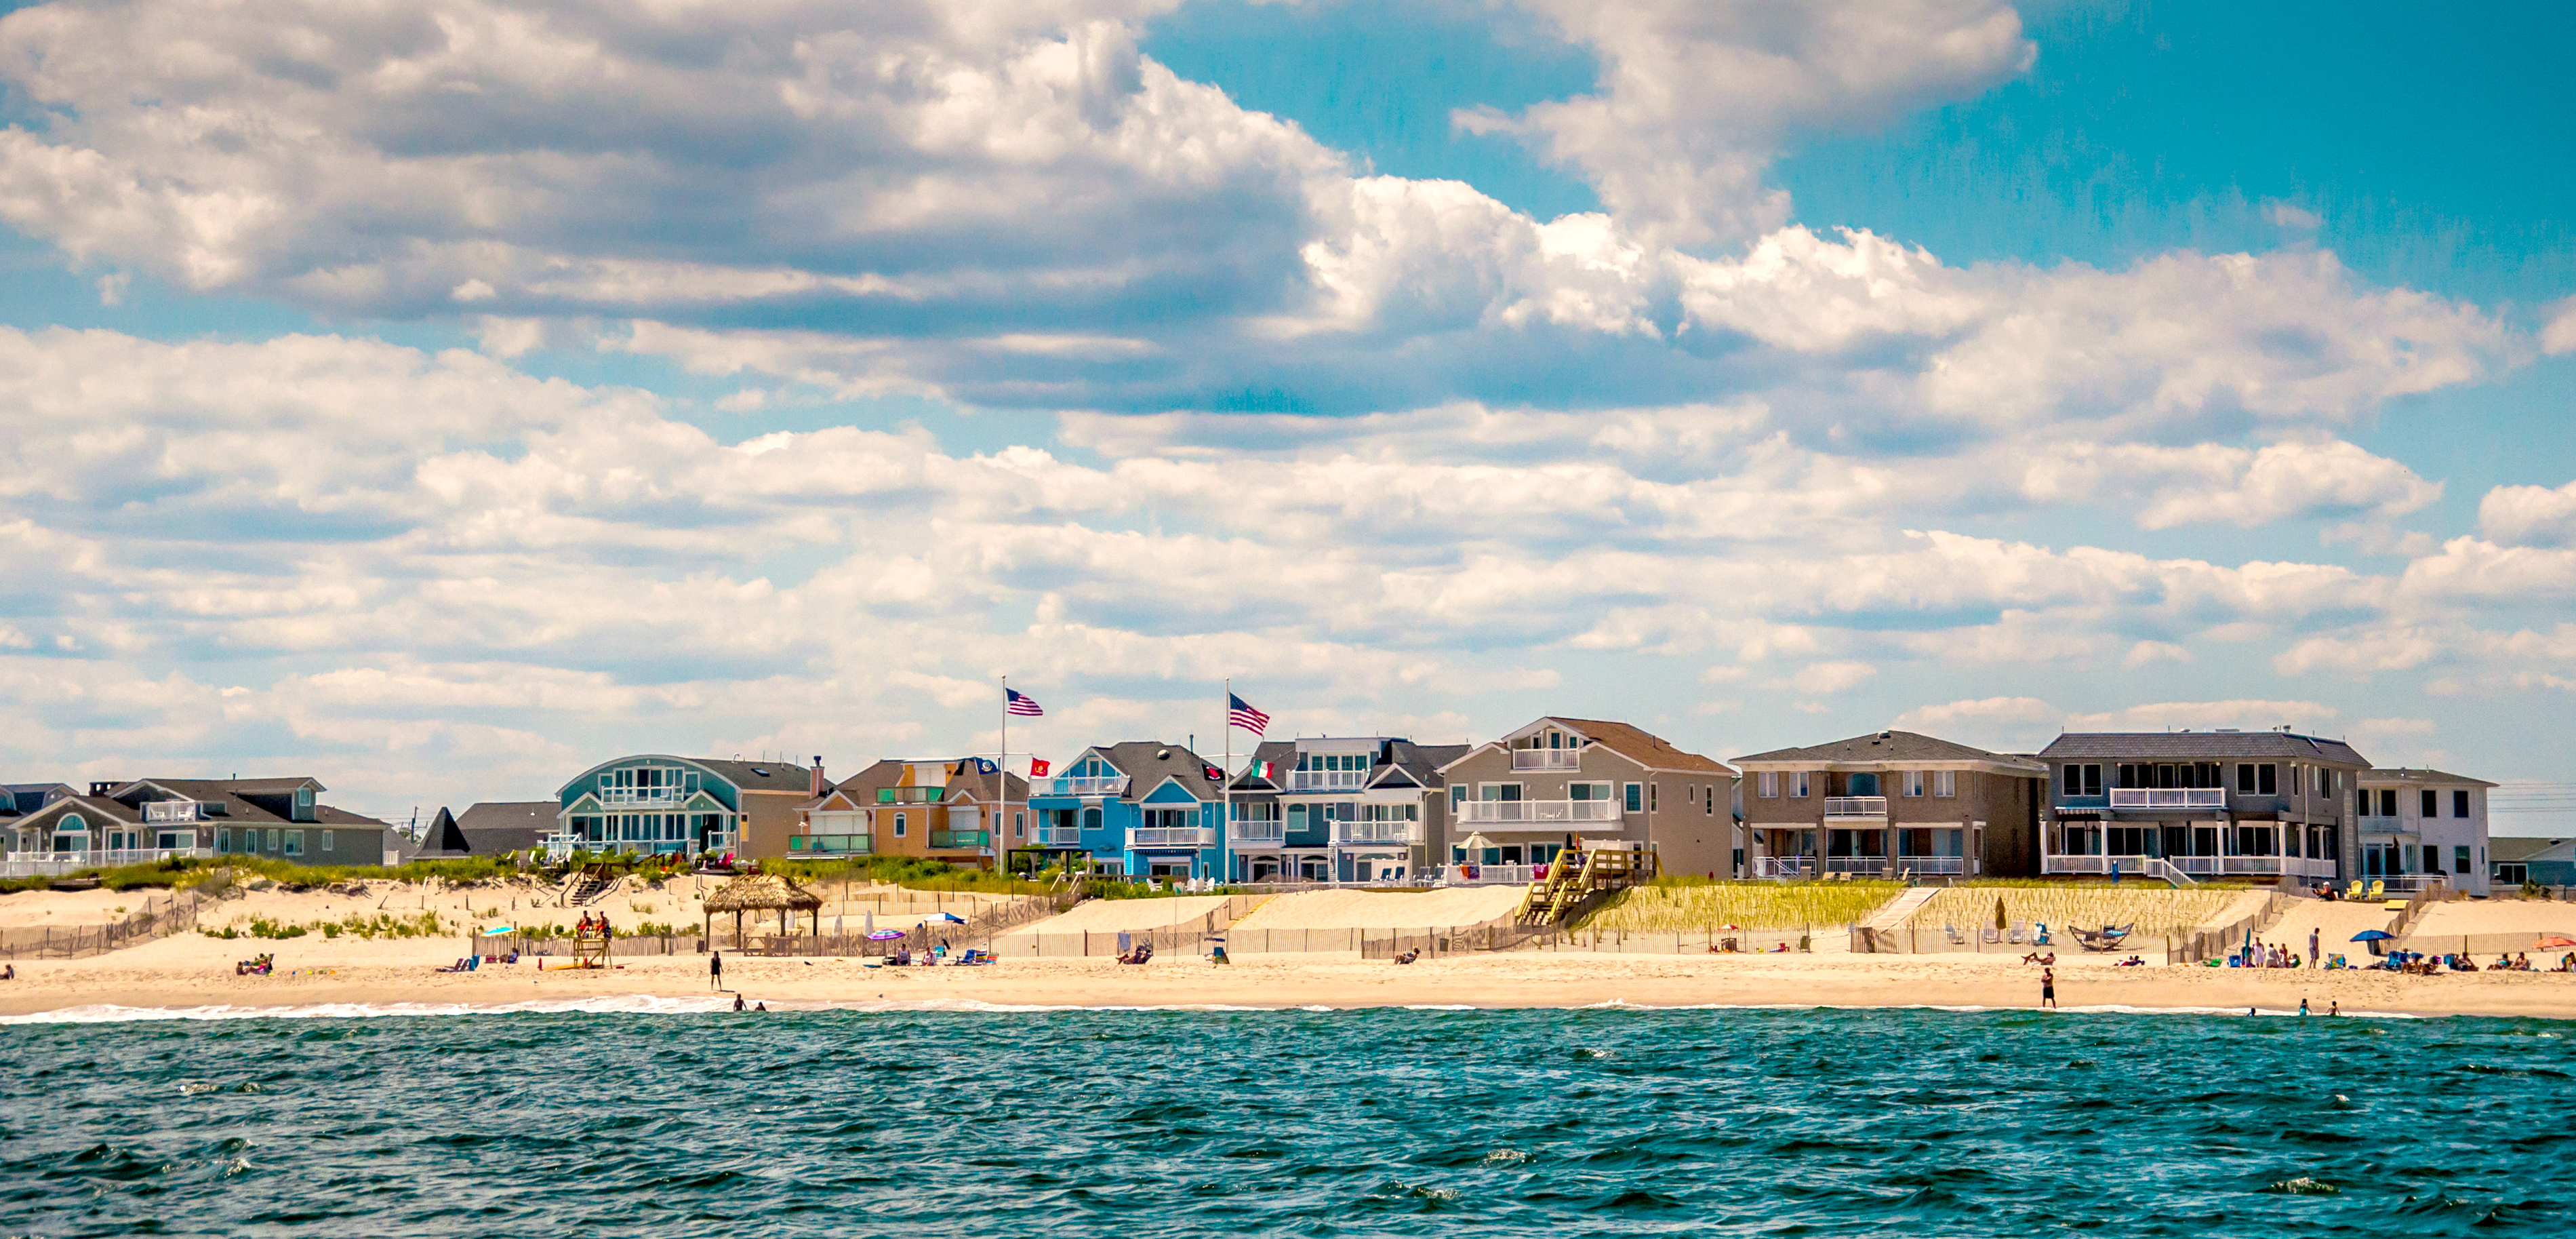 Point-Pleasant-NJ-dreamstime_l_47751674.jpg?mtime=20180608131052#asset:102084